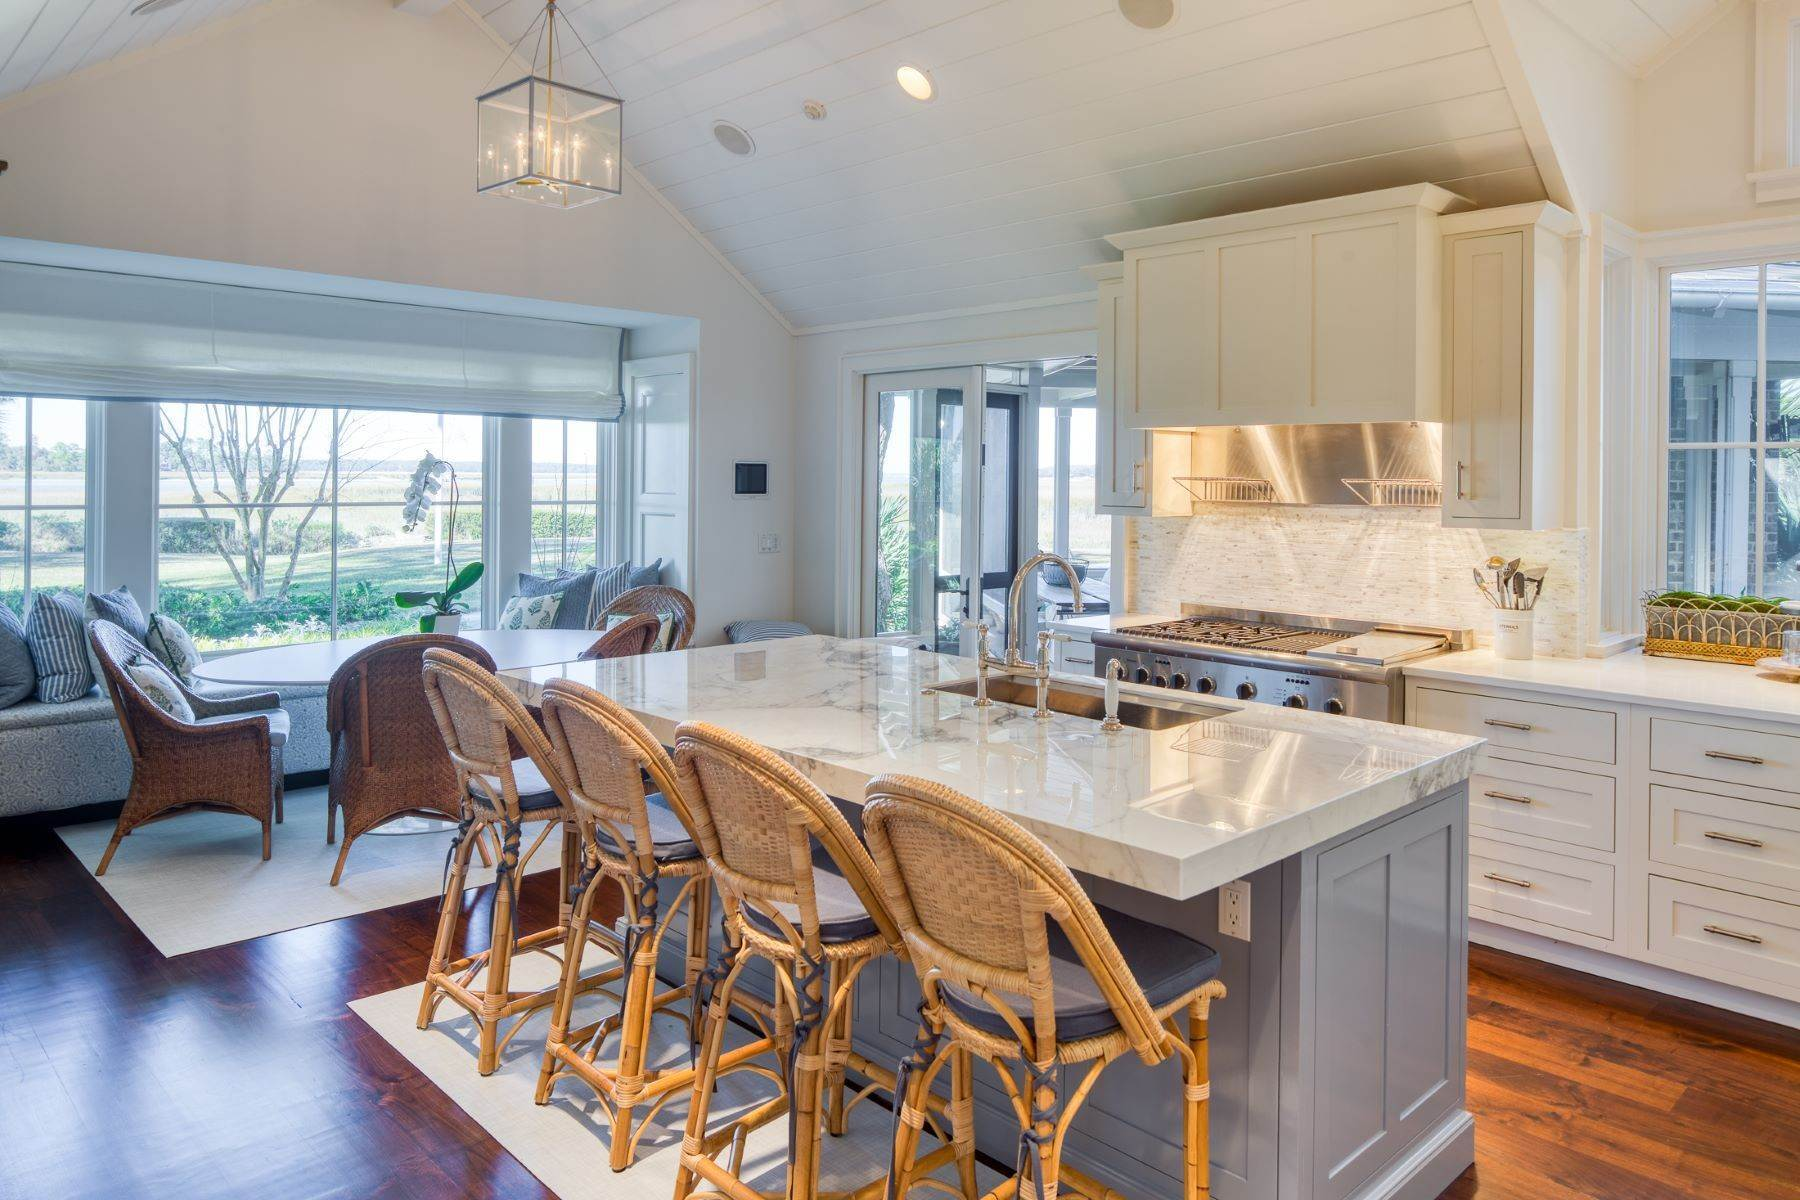 17. Single Family Homes for Sale at Premier Waterfront 71 North Calibogue Cay Hilton Head Island, South Carolina 29928 United States